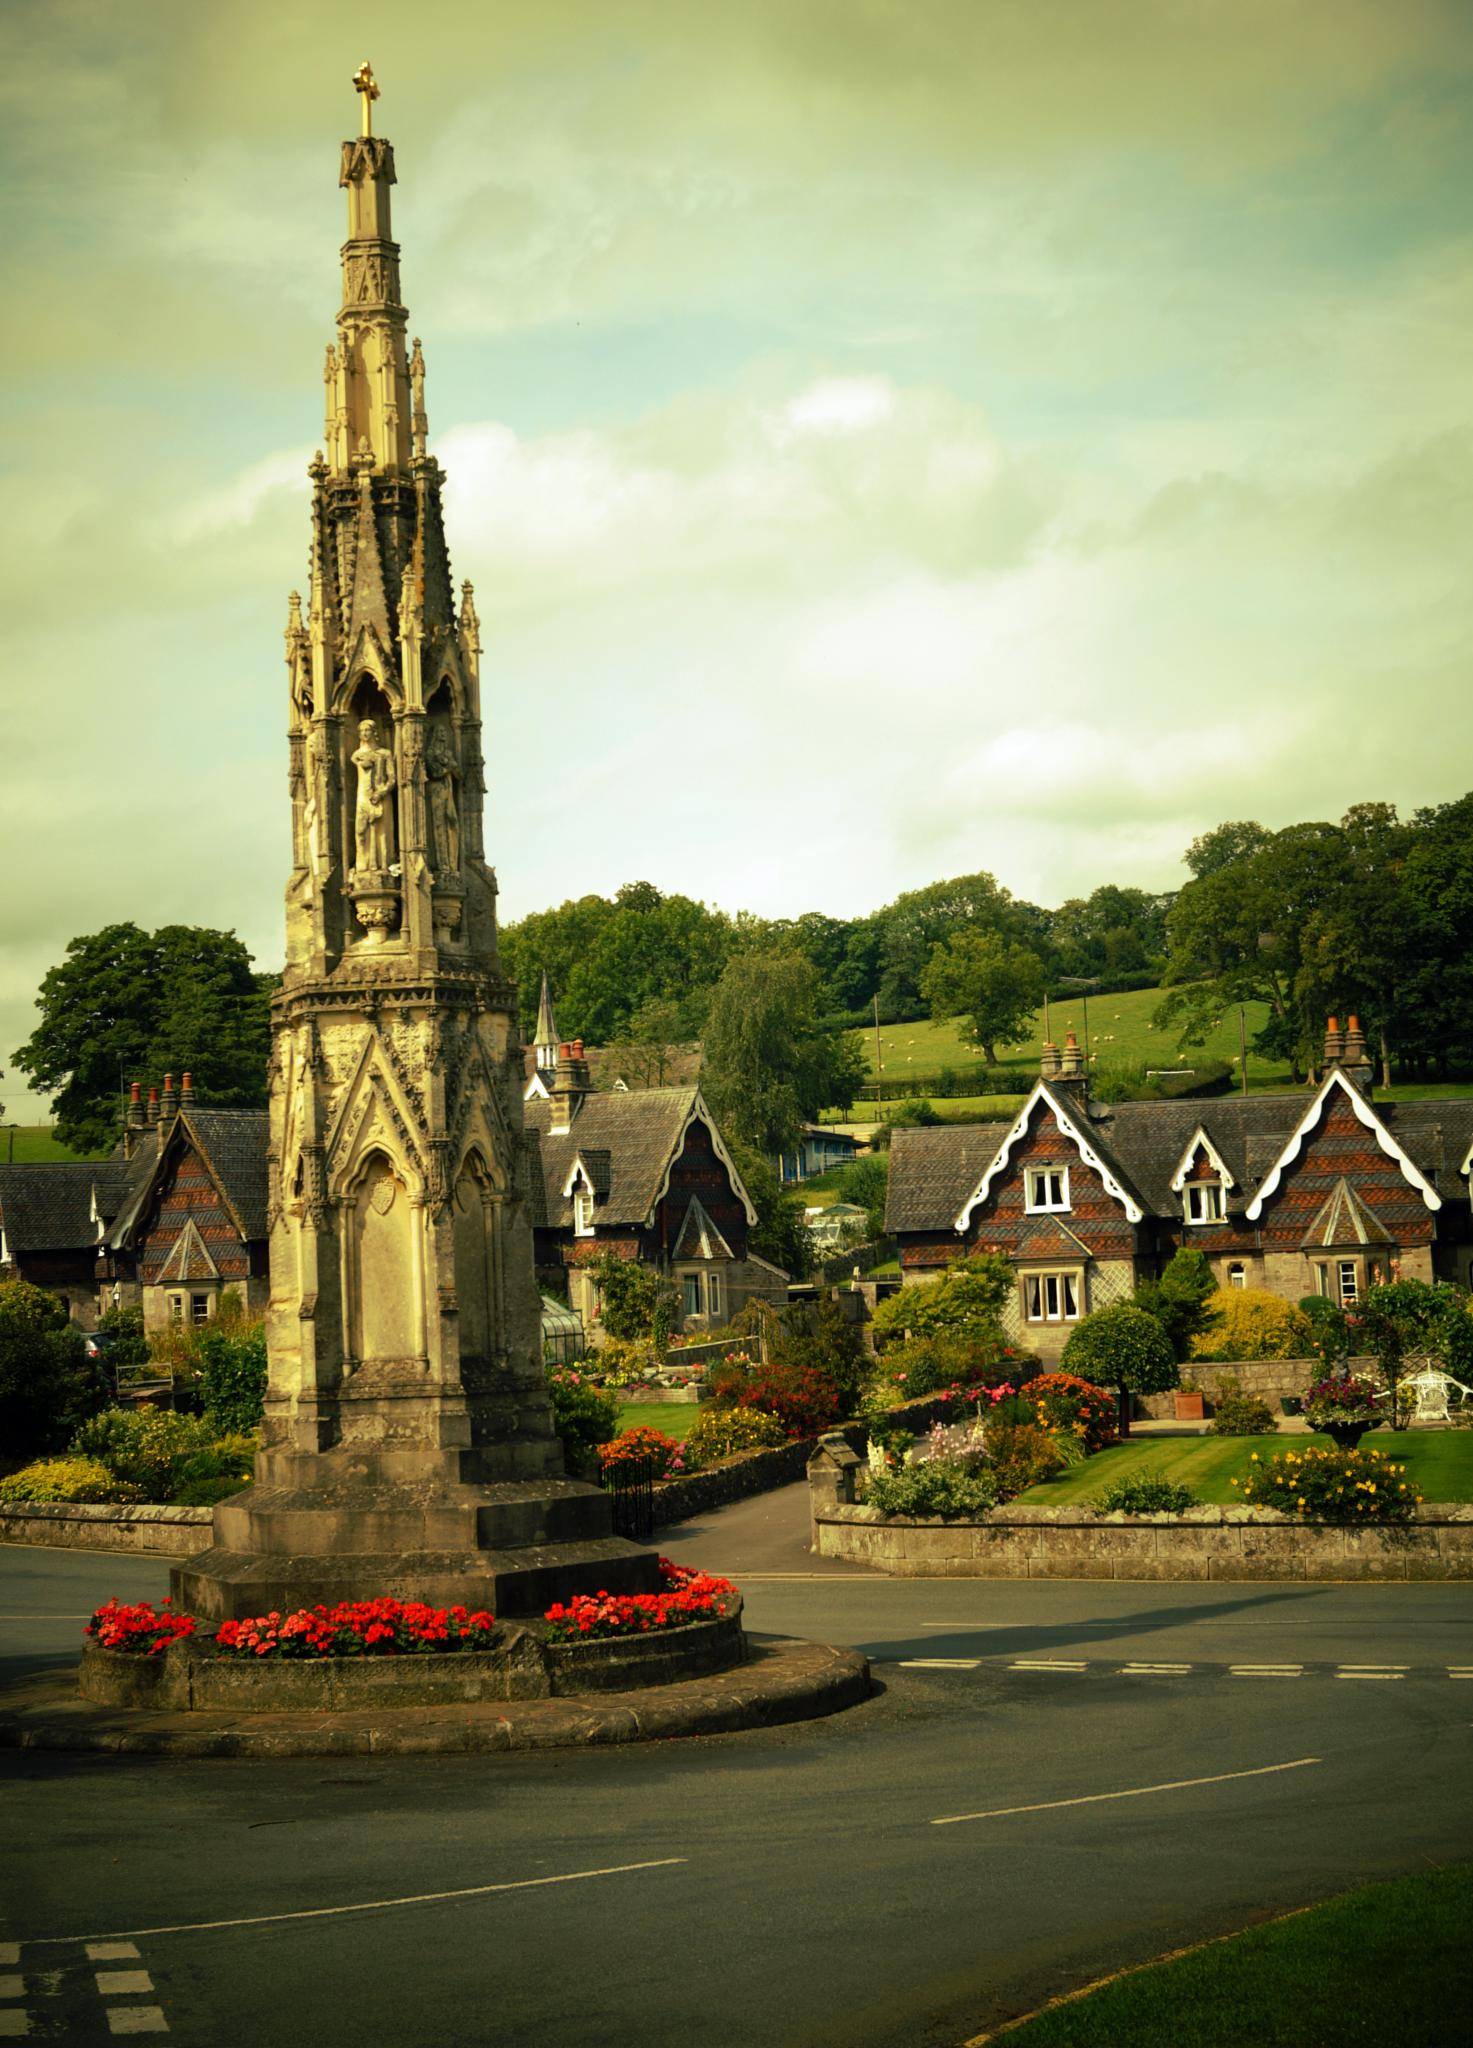 Ilam Cross by imurfin